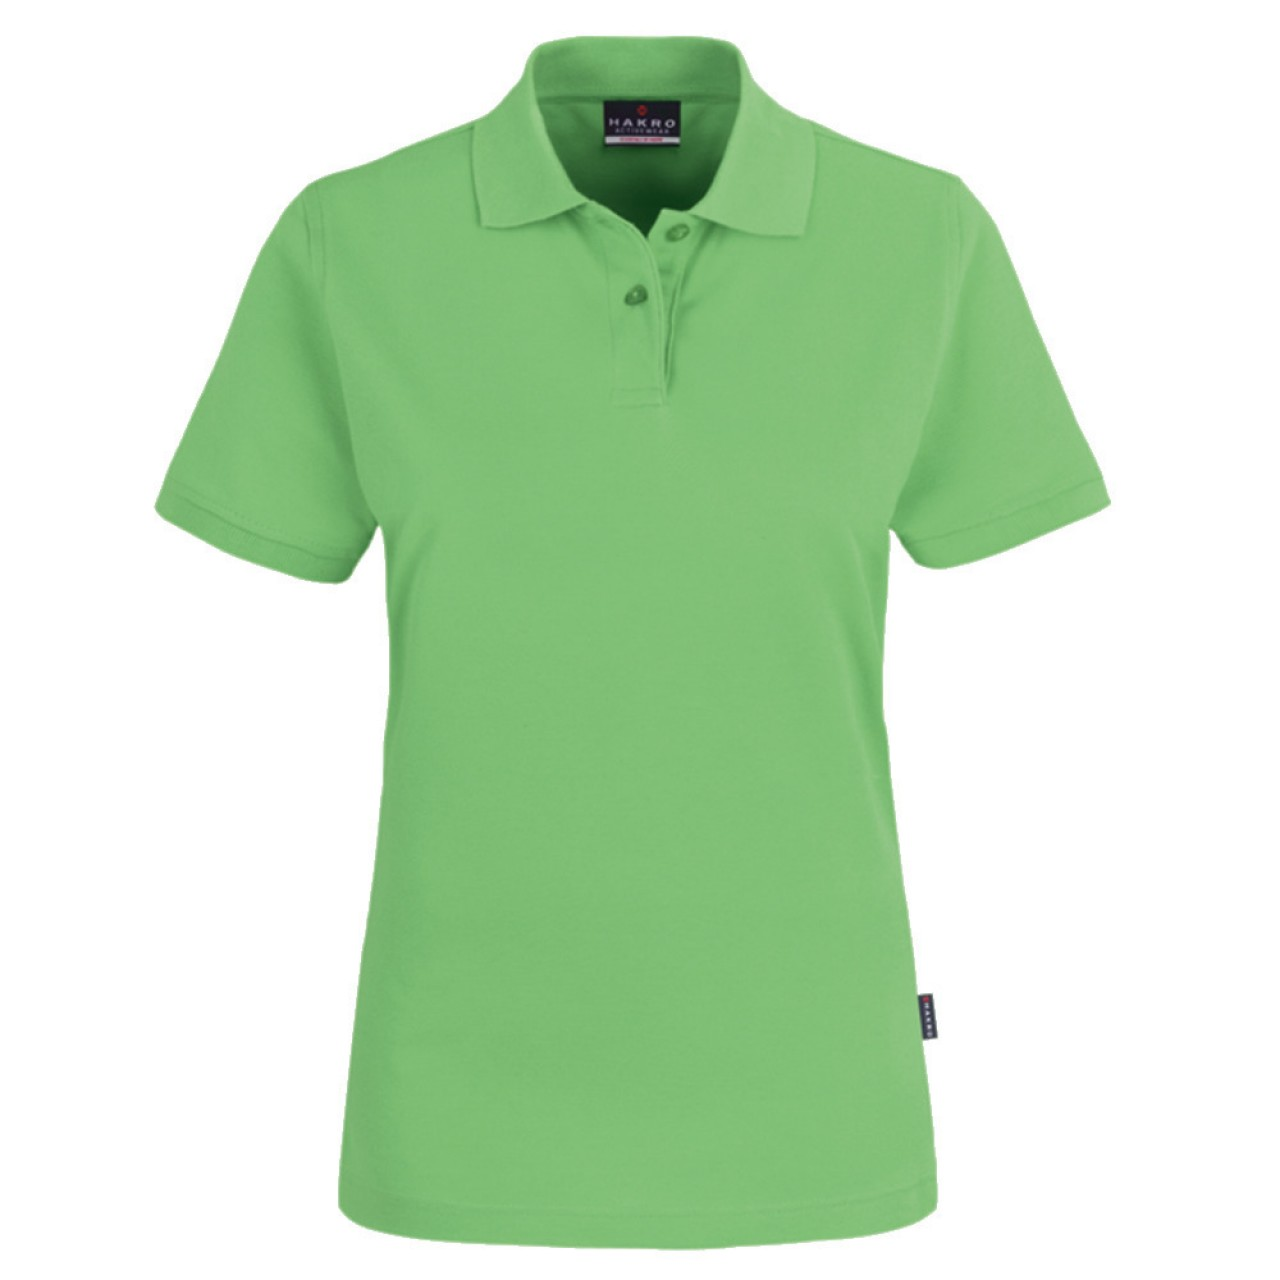 Damen Polo-Shirt Top apfel